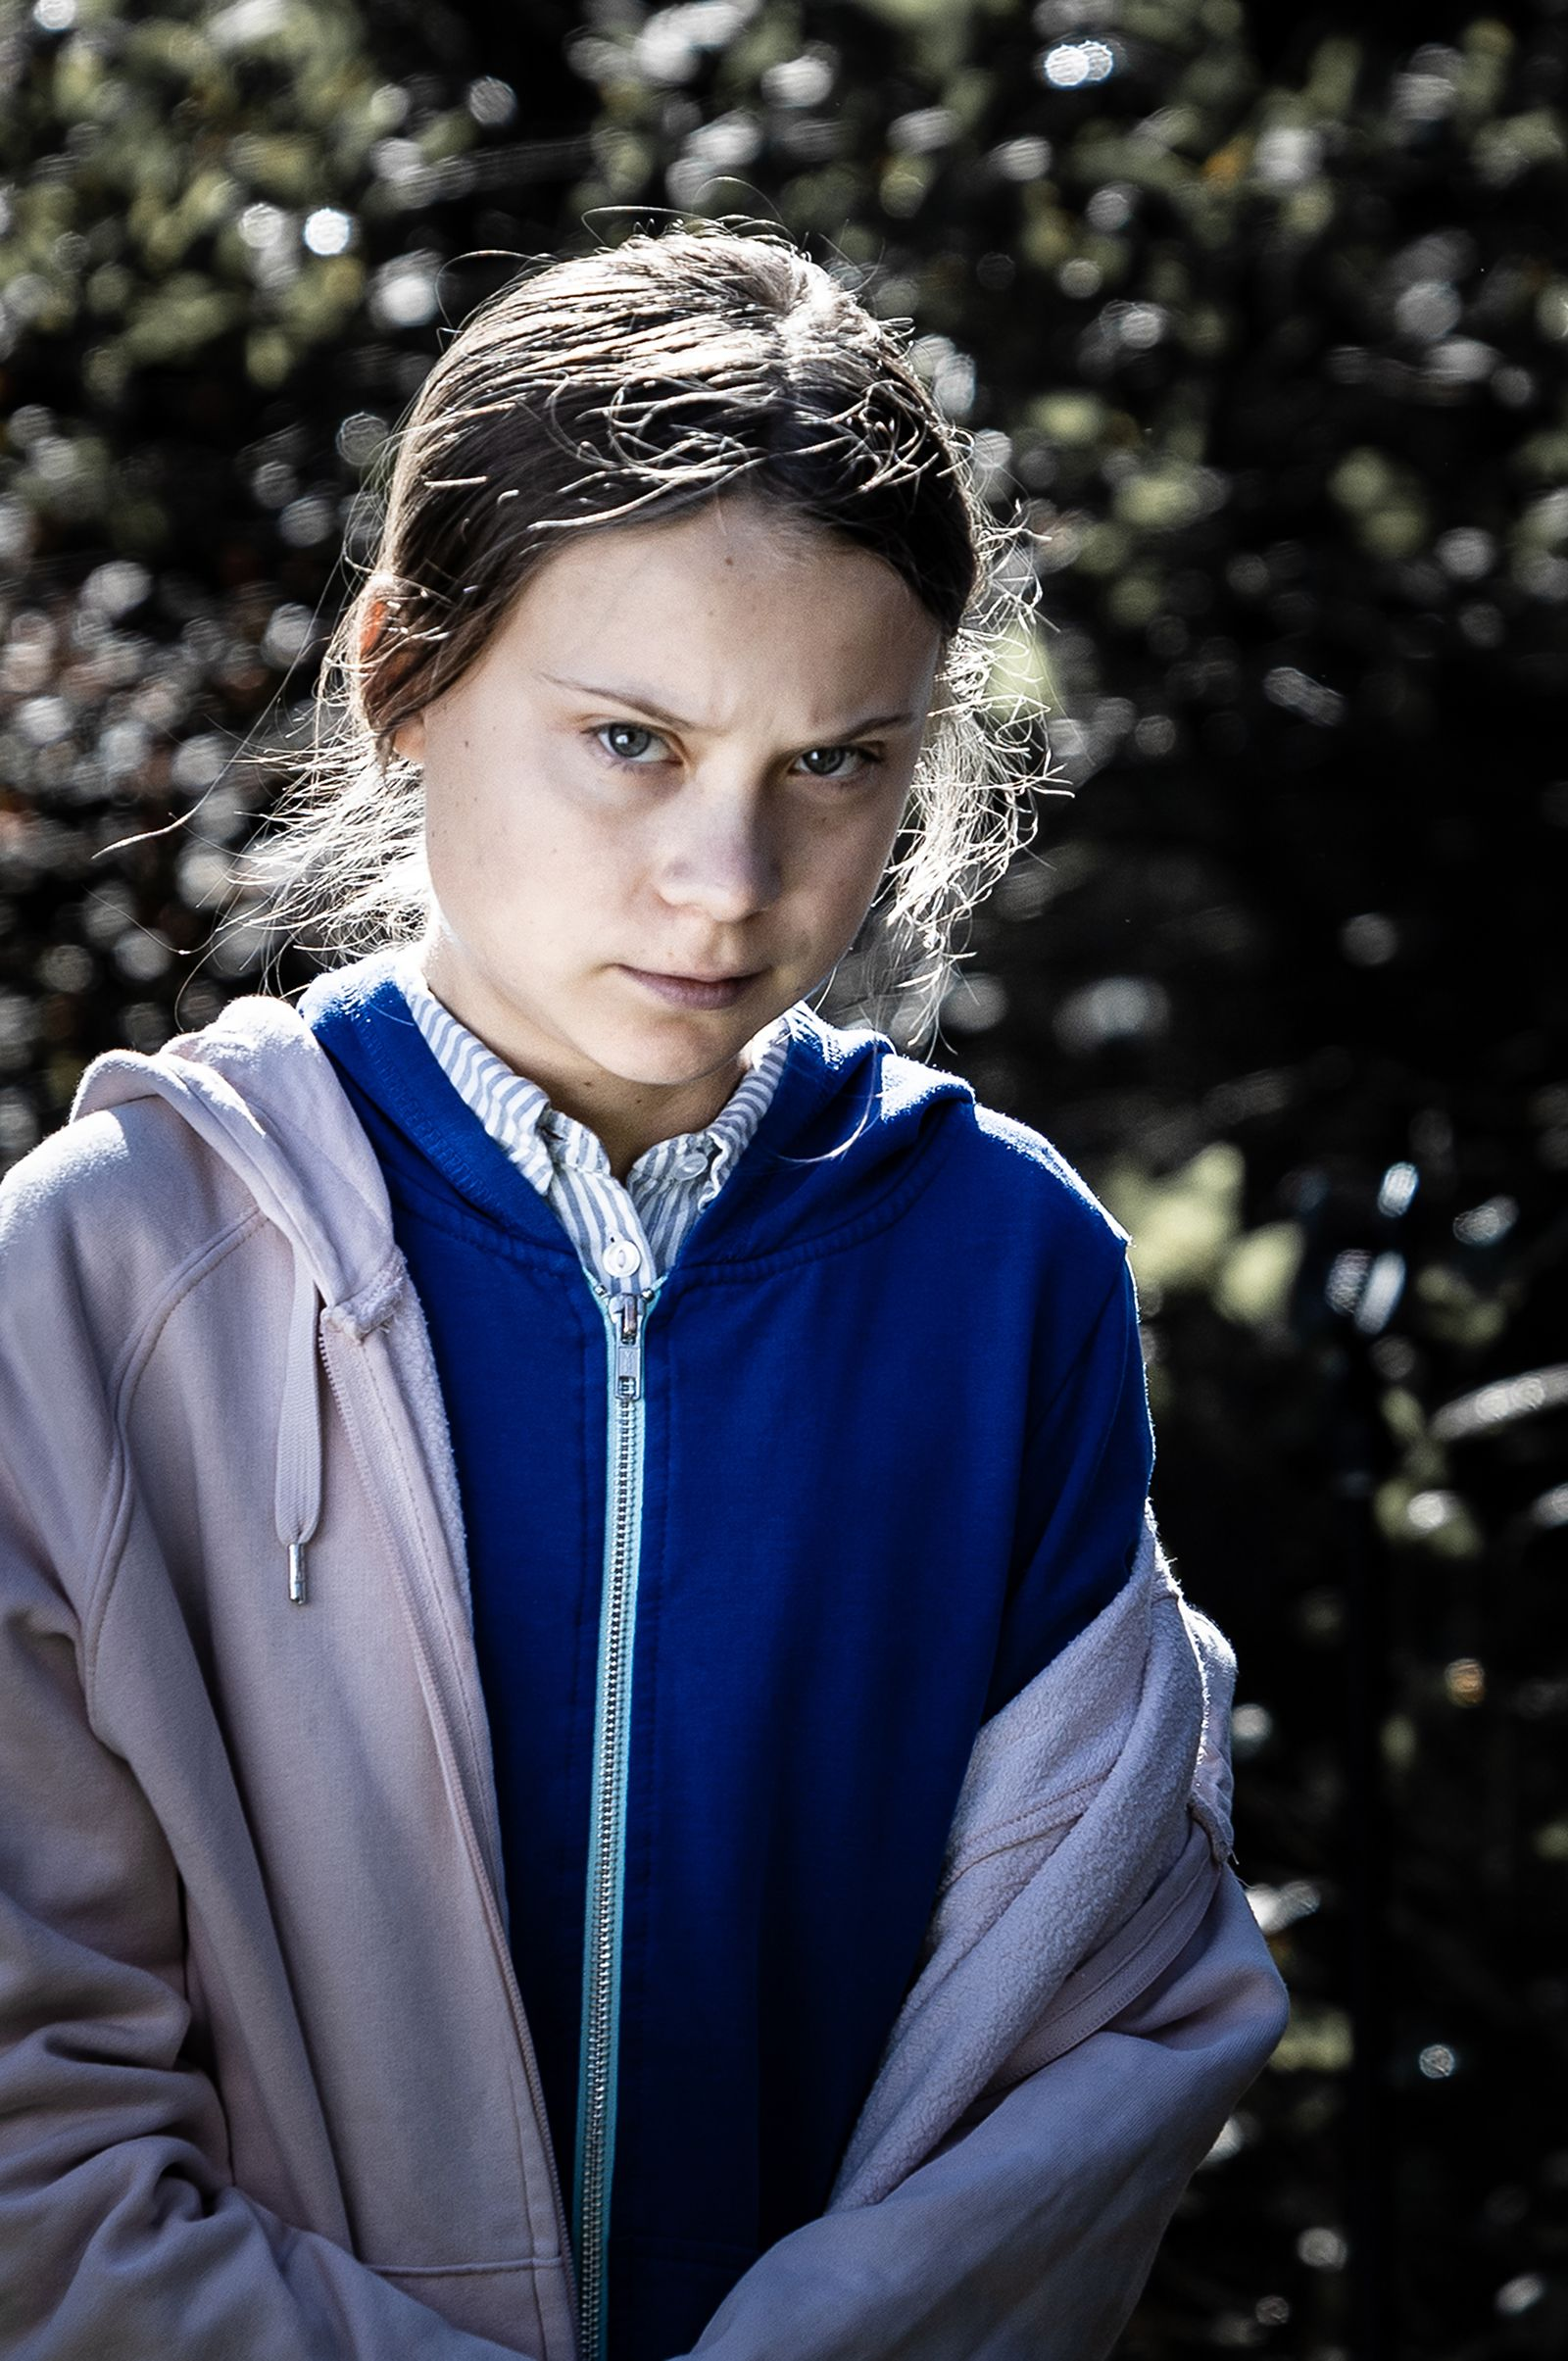 Greta Thunberg attends 'Fridays for Future' in Montreal